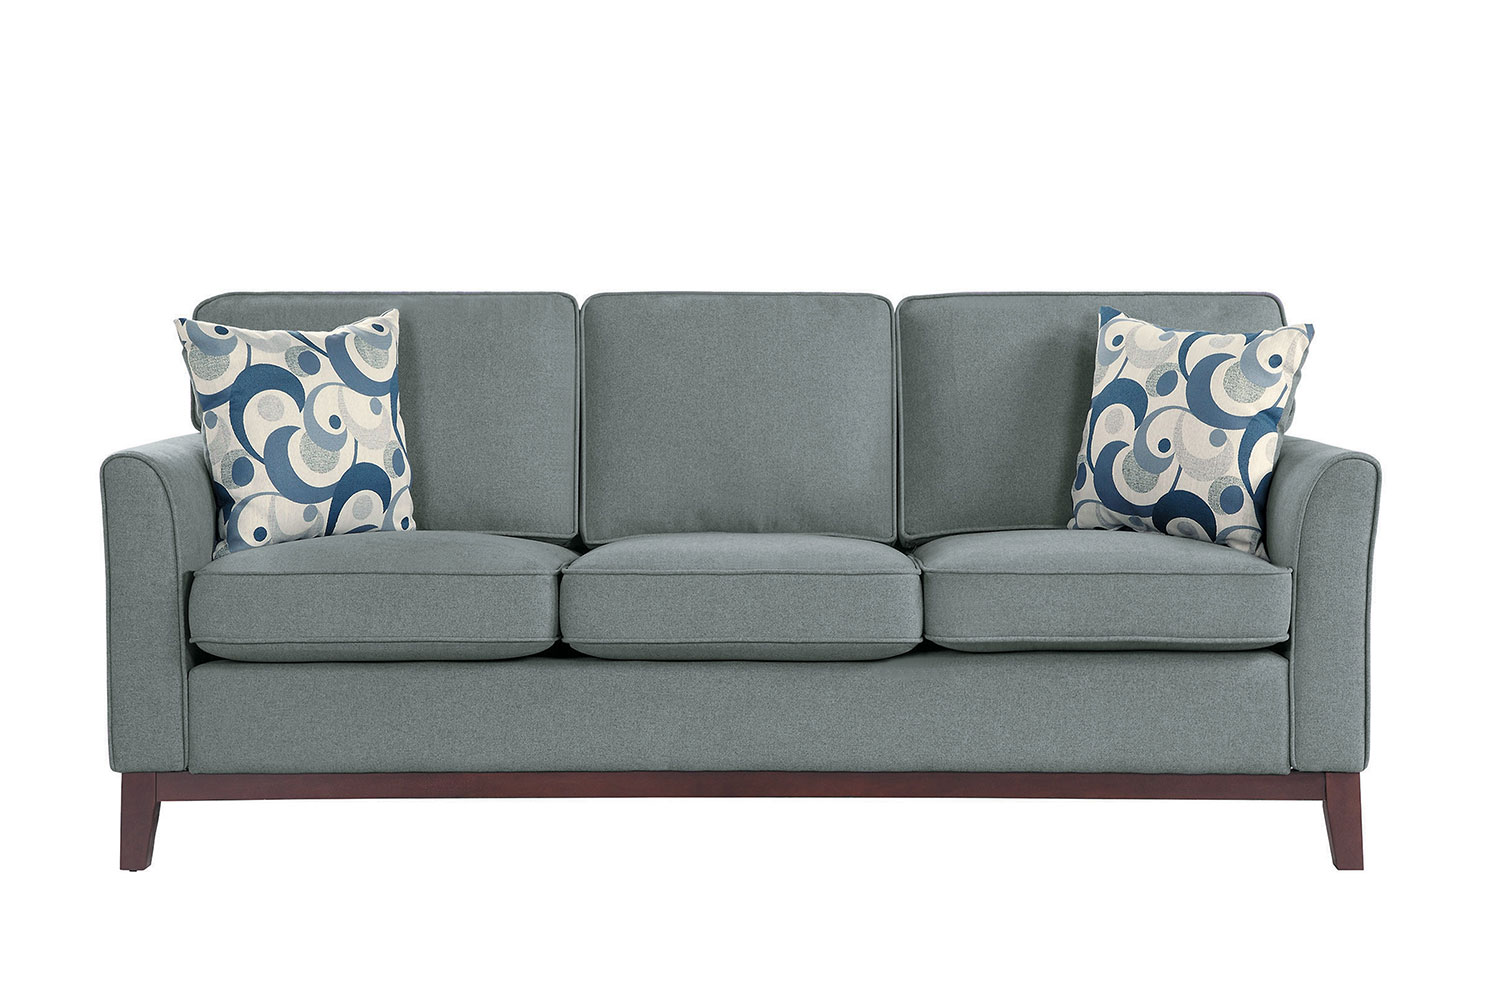 Homelegance Blue Lake Sofa - Gray